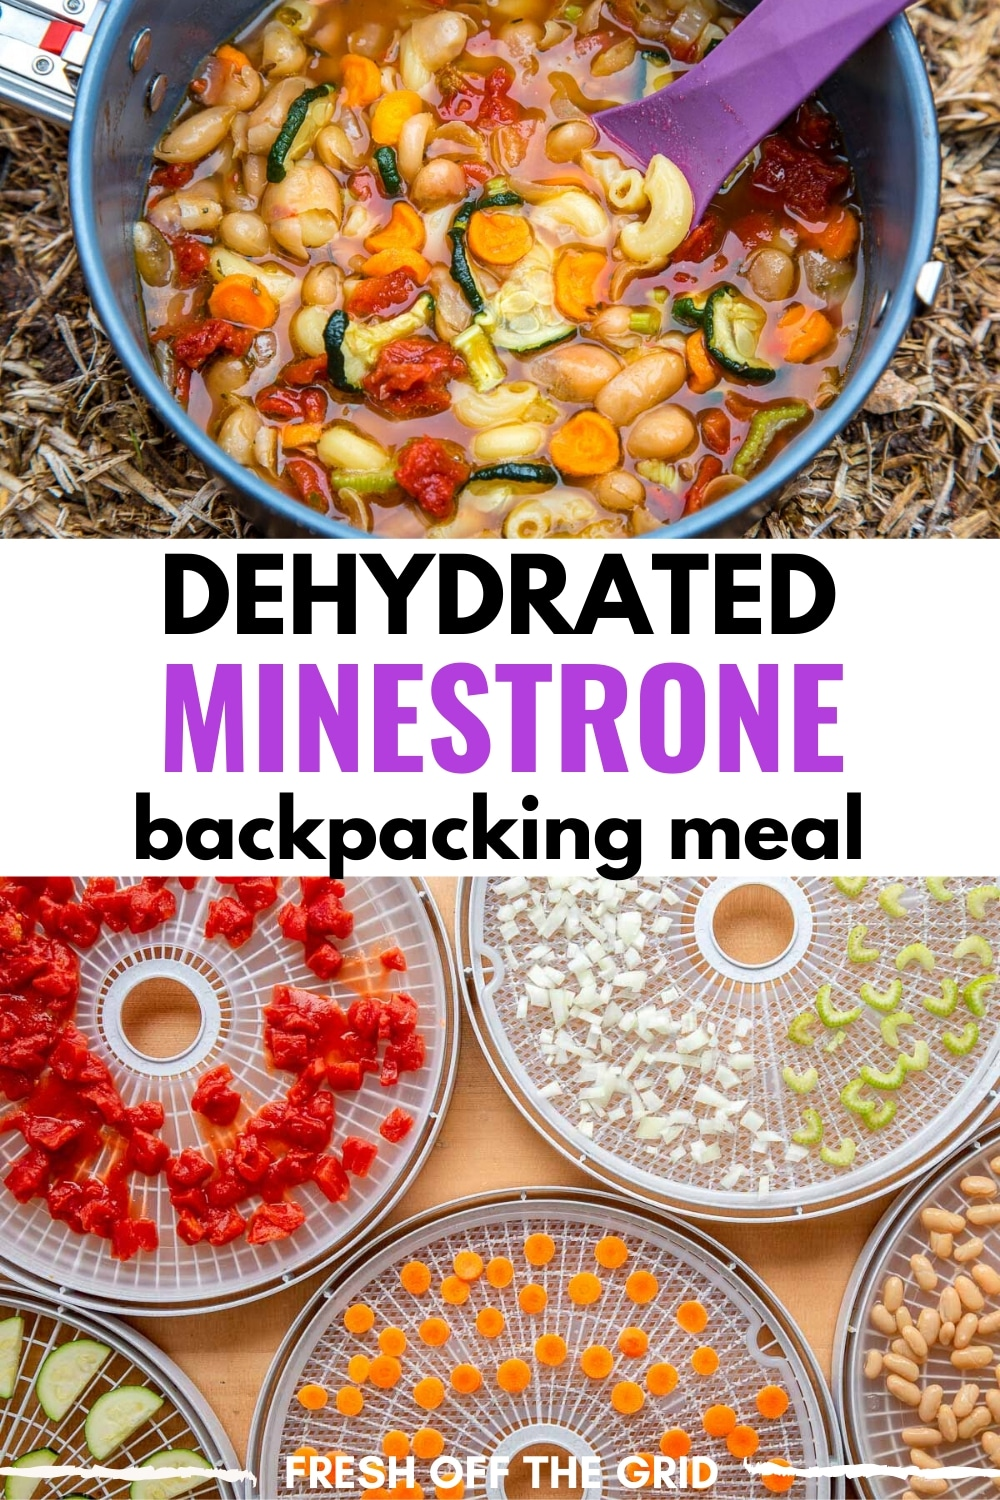 This Minestrone Soup is an easy dehydrated backpacking meal! Combining veggies like zucchini, carrots, and tomatoes with white beans for protein, this soup is hearty and perfect after a long day on the trail. Backpacking food | Dehydrator recipe via @freshoffthegrid